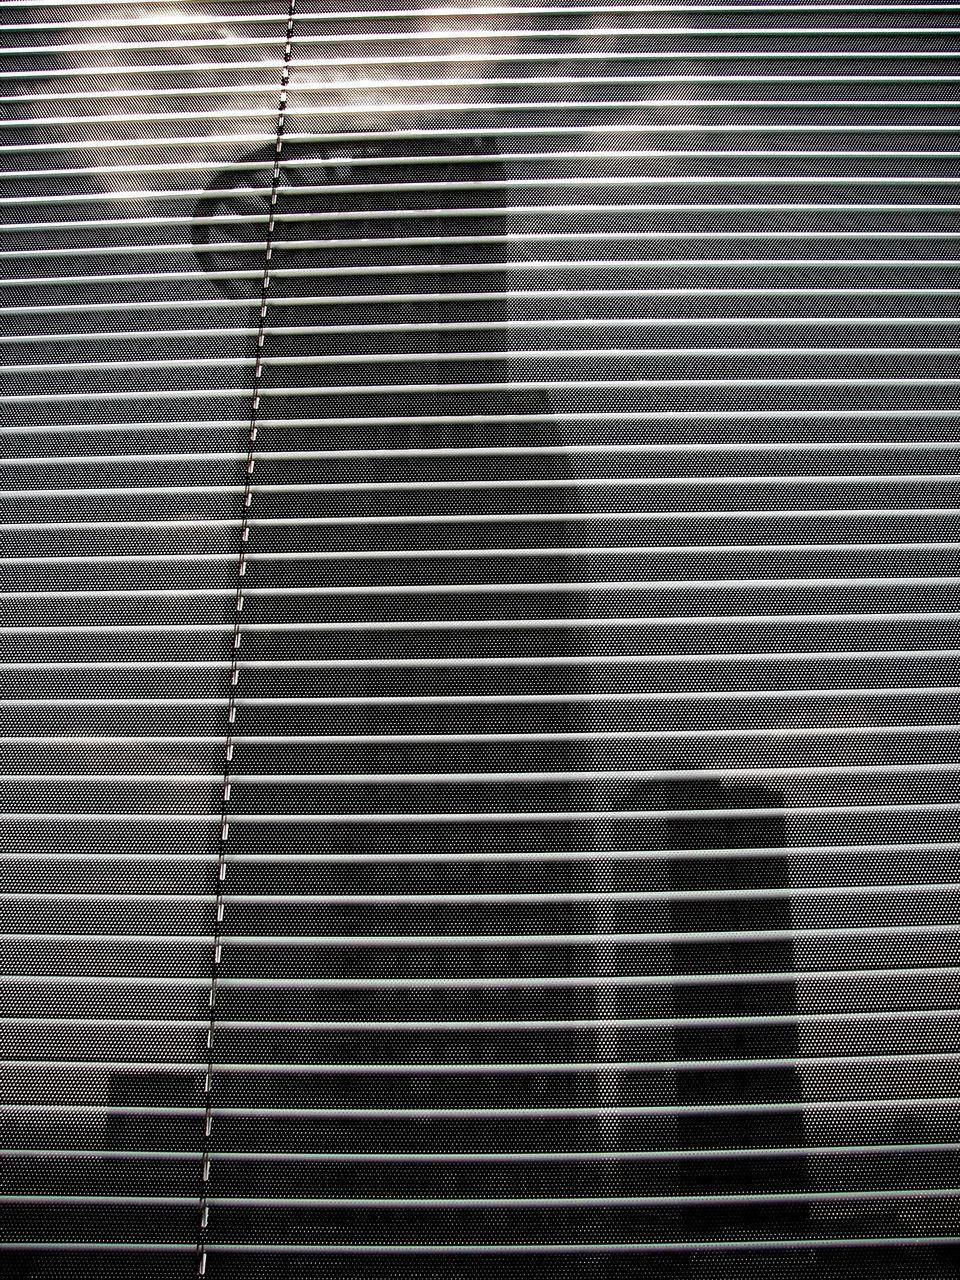 Tower Against Sky Seen Through Window Blinds